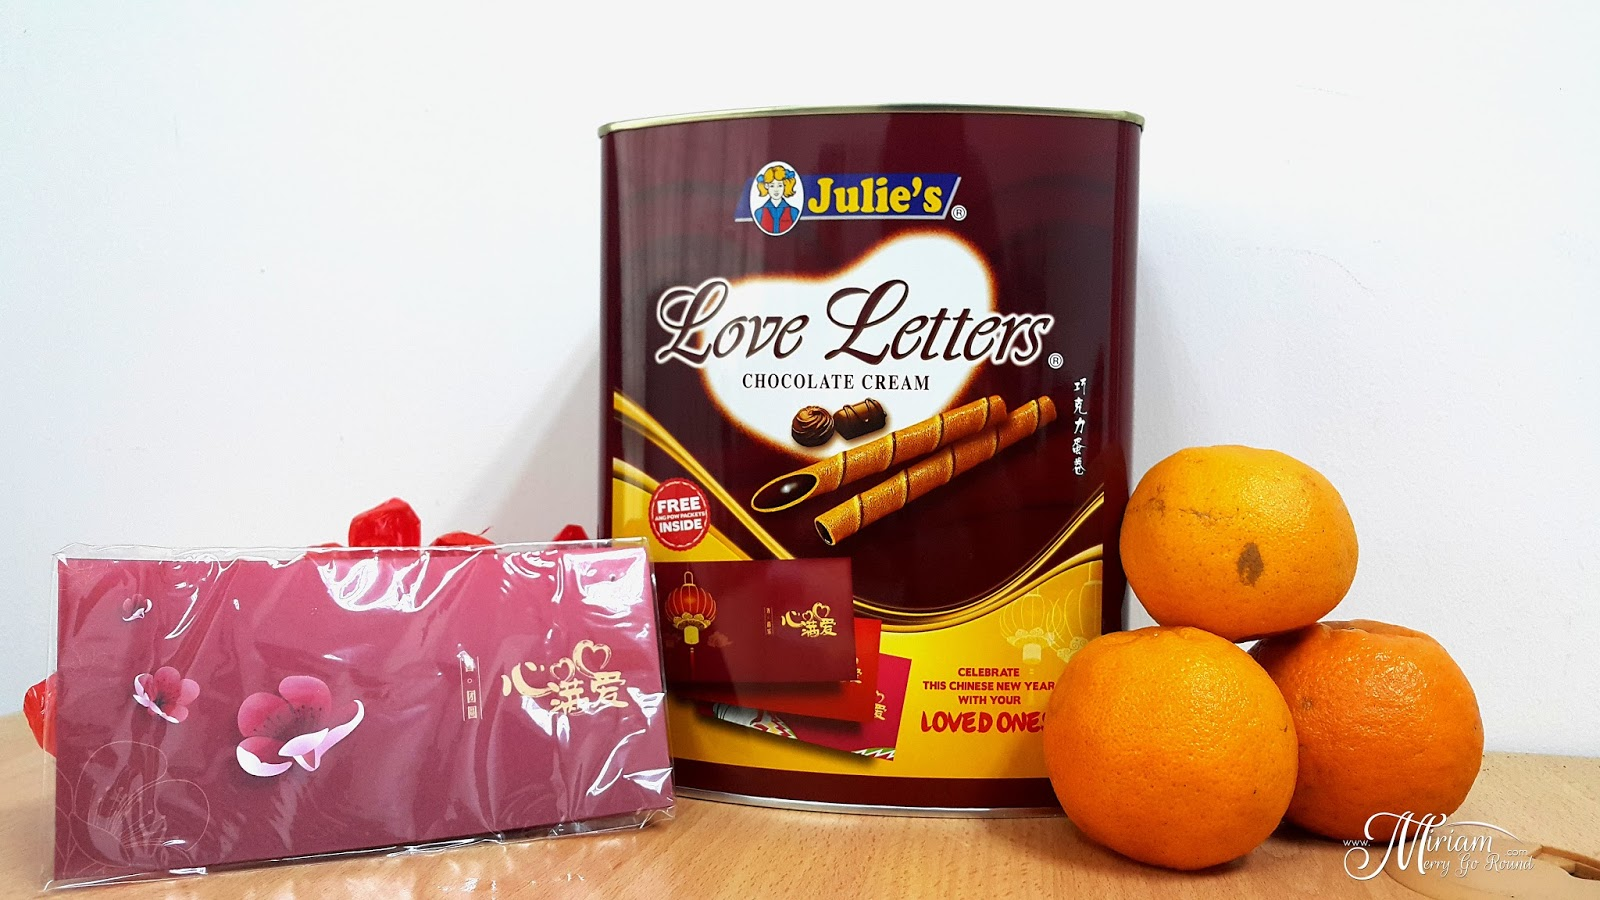 Julies biscuits cny whats your love letter miriam merrygoround i actually am quite an addict for julies love letter and especially during this chinese new year most supermarkets are selling it at a promotional price m4hsunfo